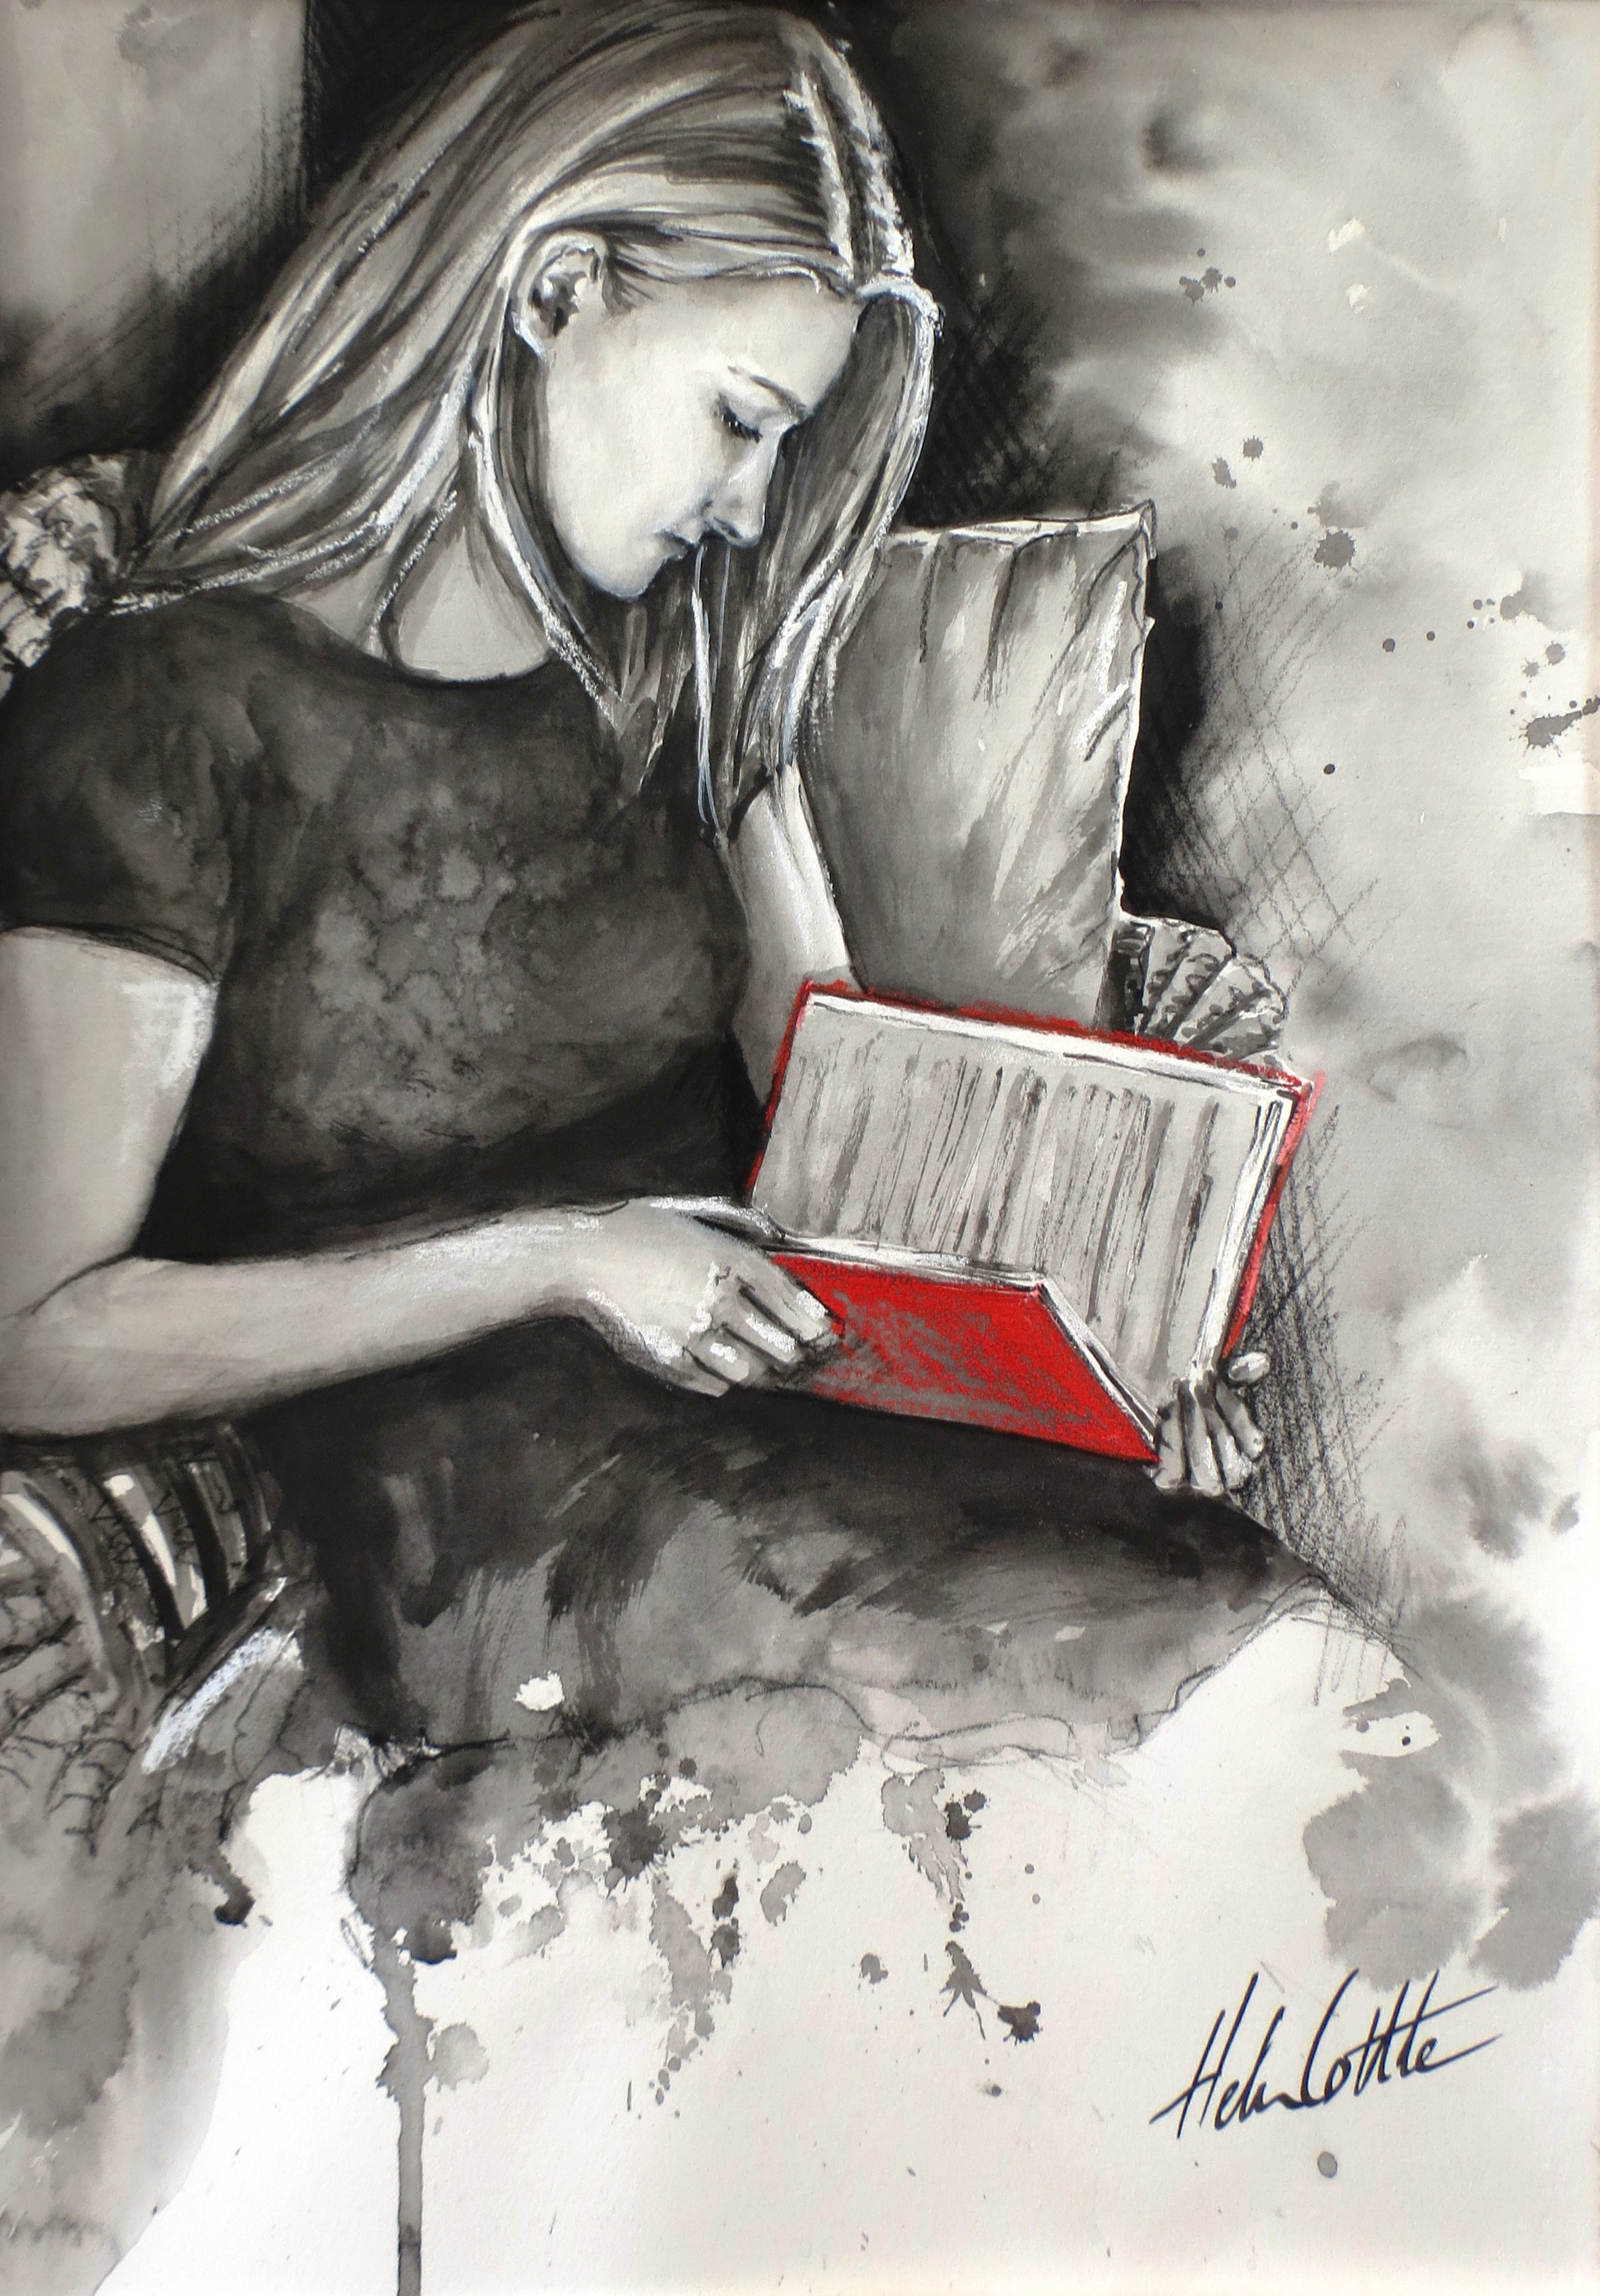 The Red Book Watercolour,Gouache and Pastel 24x36cm by Helen Cottle.JPG